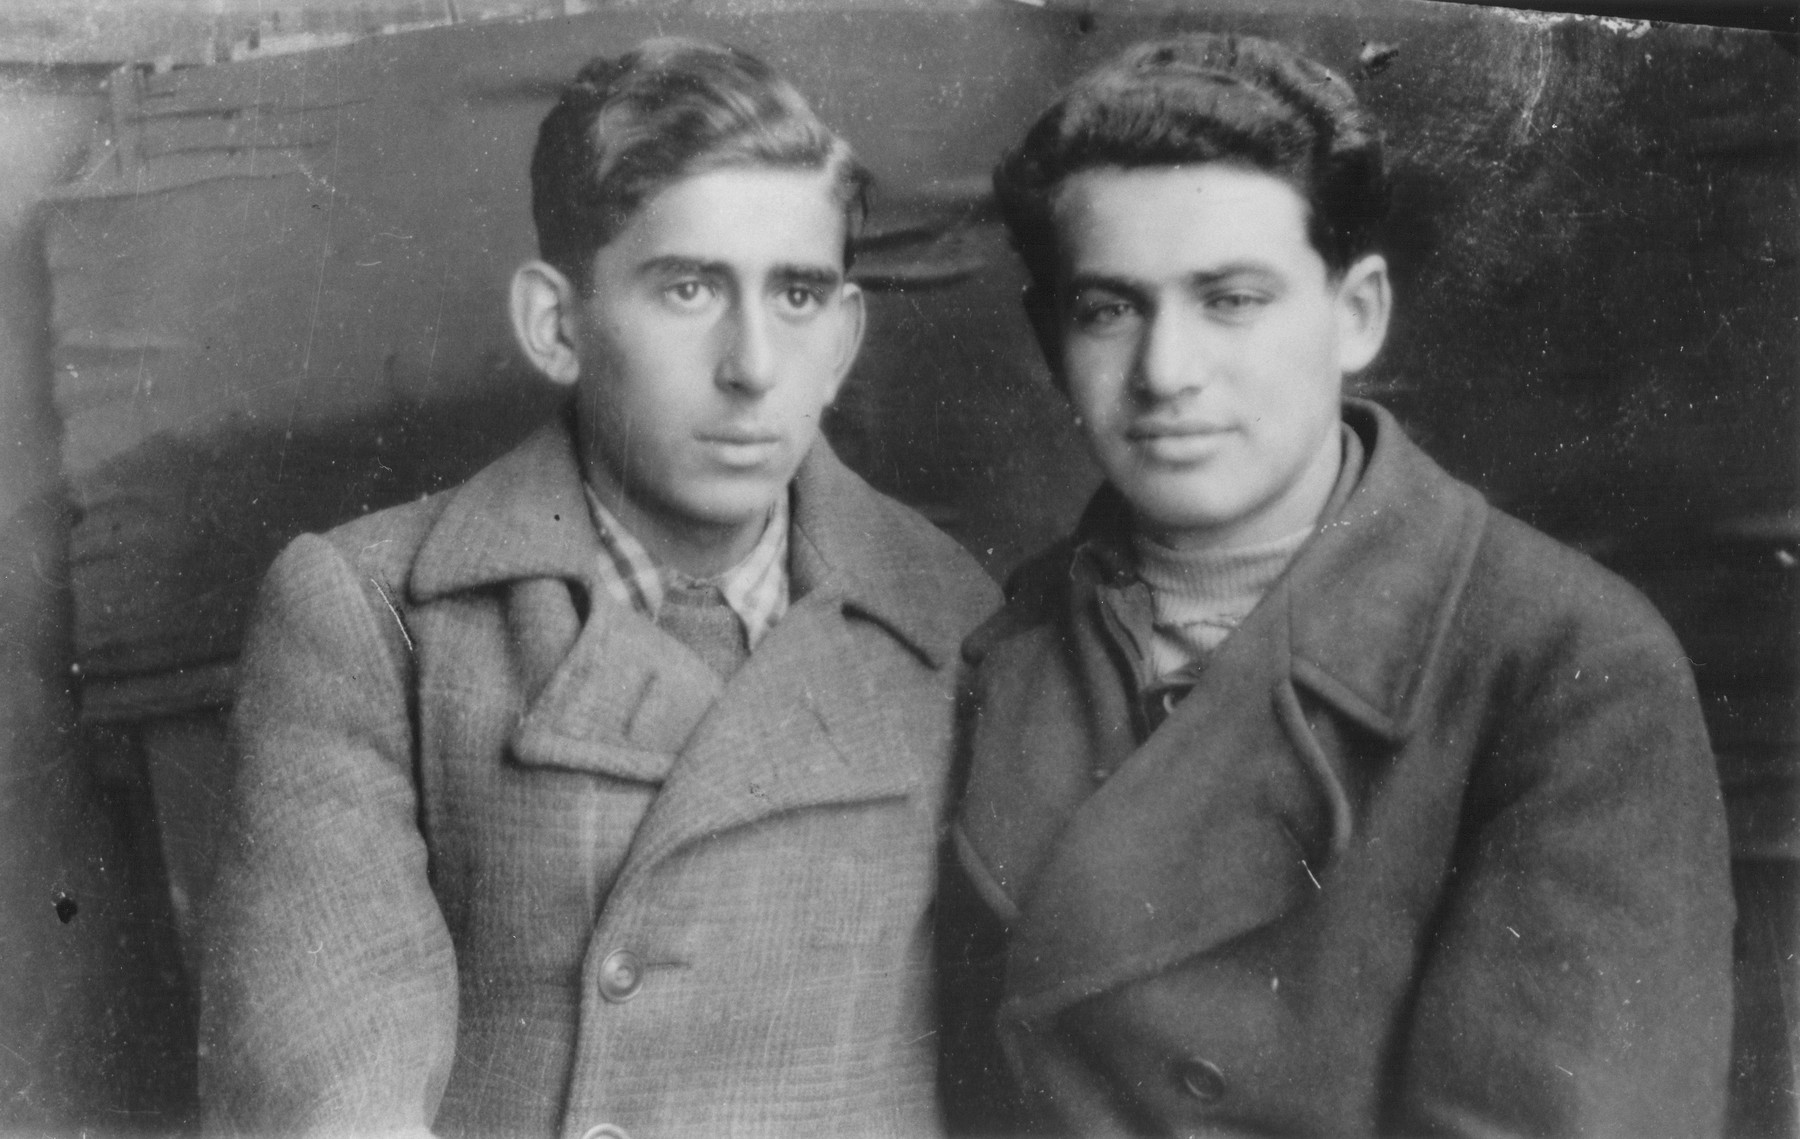 Aaron Yermus and his classmate Moshe Kristol.  The two attended a Russian, Polish school in Kzyl-Orda, Khazakstan during the war.    The student body was 60% Jewish and 40% non-Jewish.  Its students were mostly Polish refugees seeking haven in the Soviet Union.